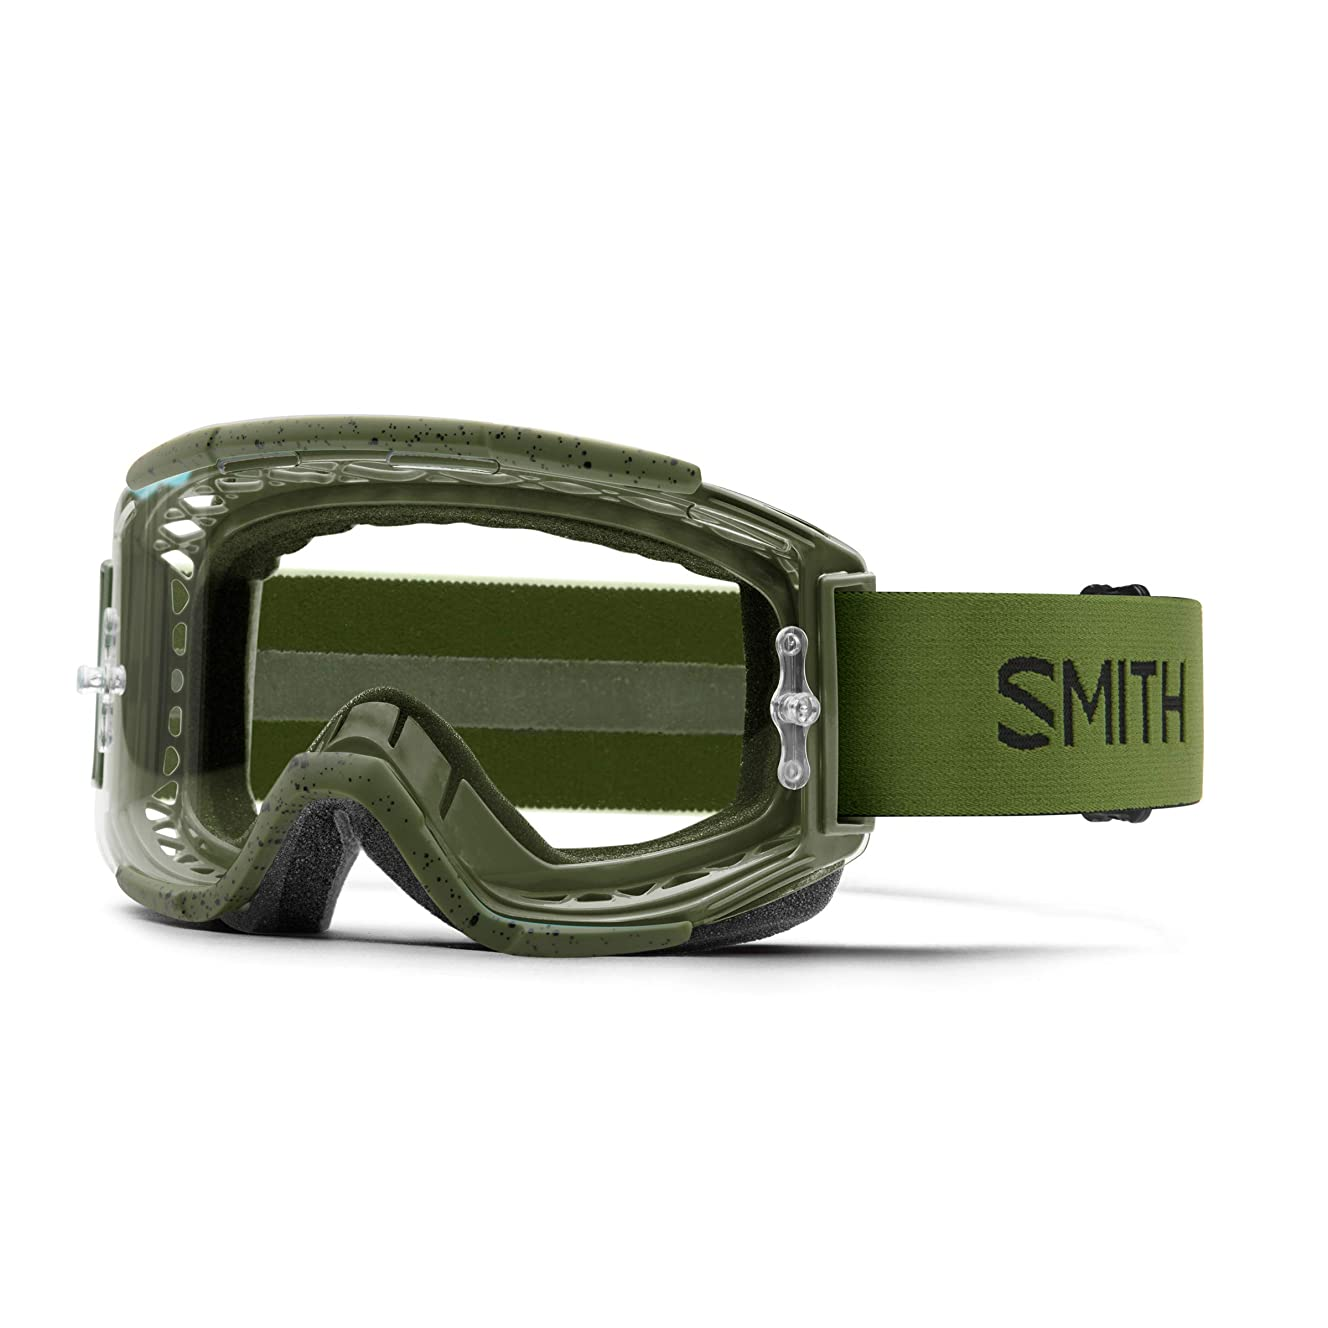 Smith Optics Squad Adult MTB Off-Road Cycling Goggles - Moss/Clear AFC/One Size